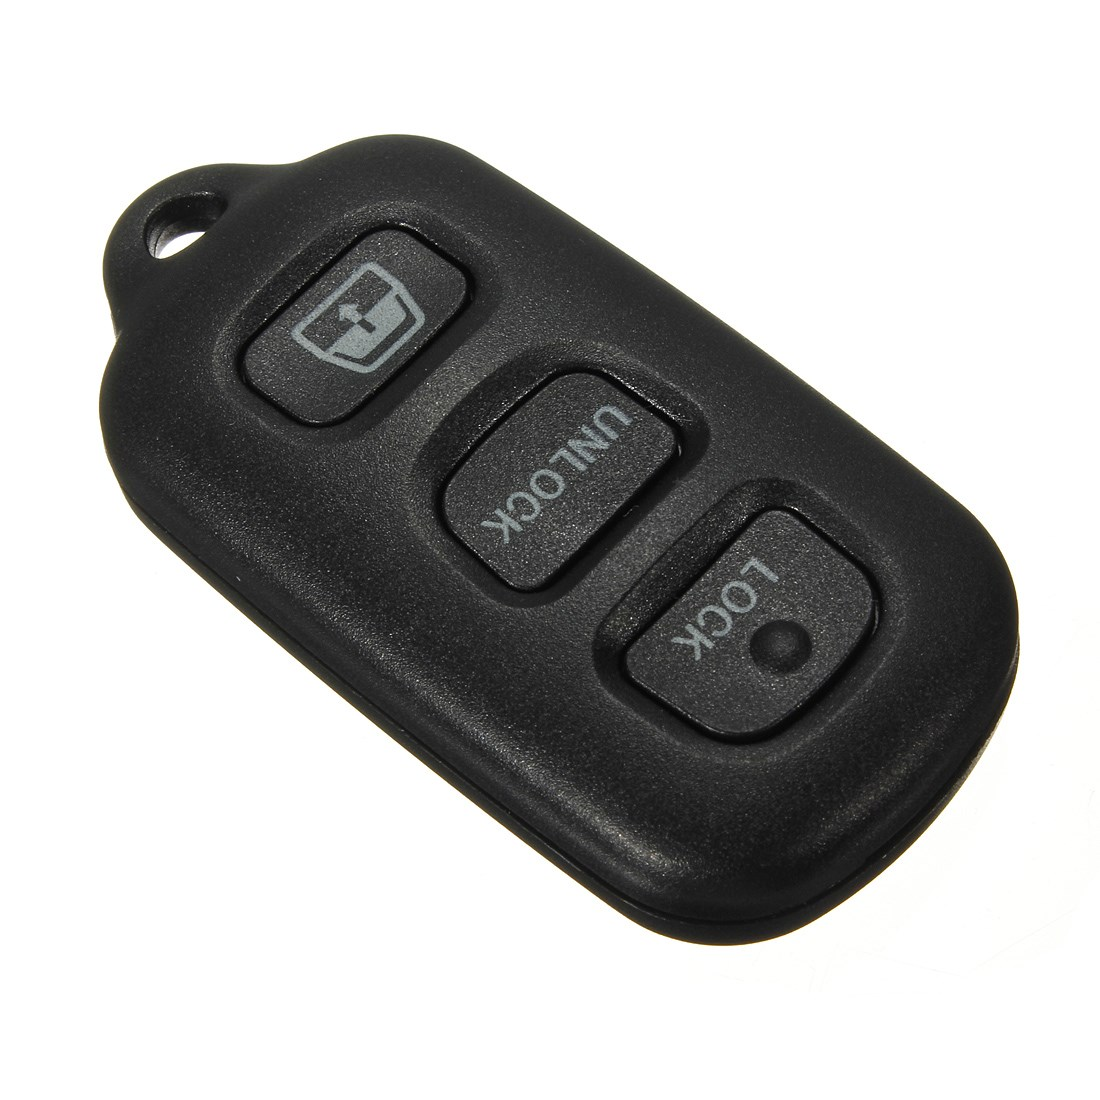 4 buttons keyless entry remote key fob for toyota 4runner 1999 2002 for hyq1512y